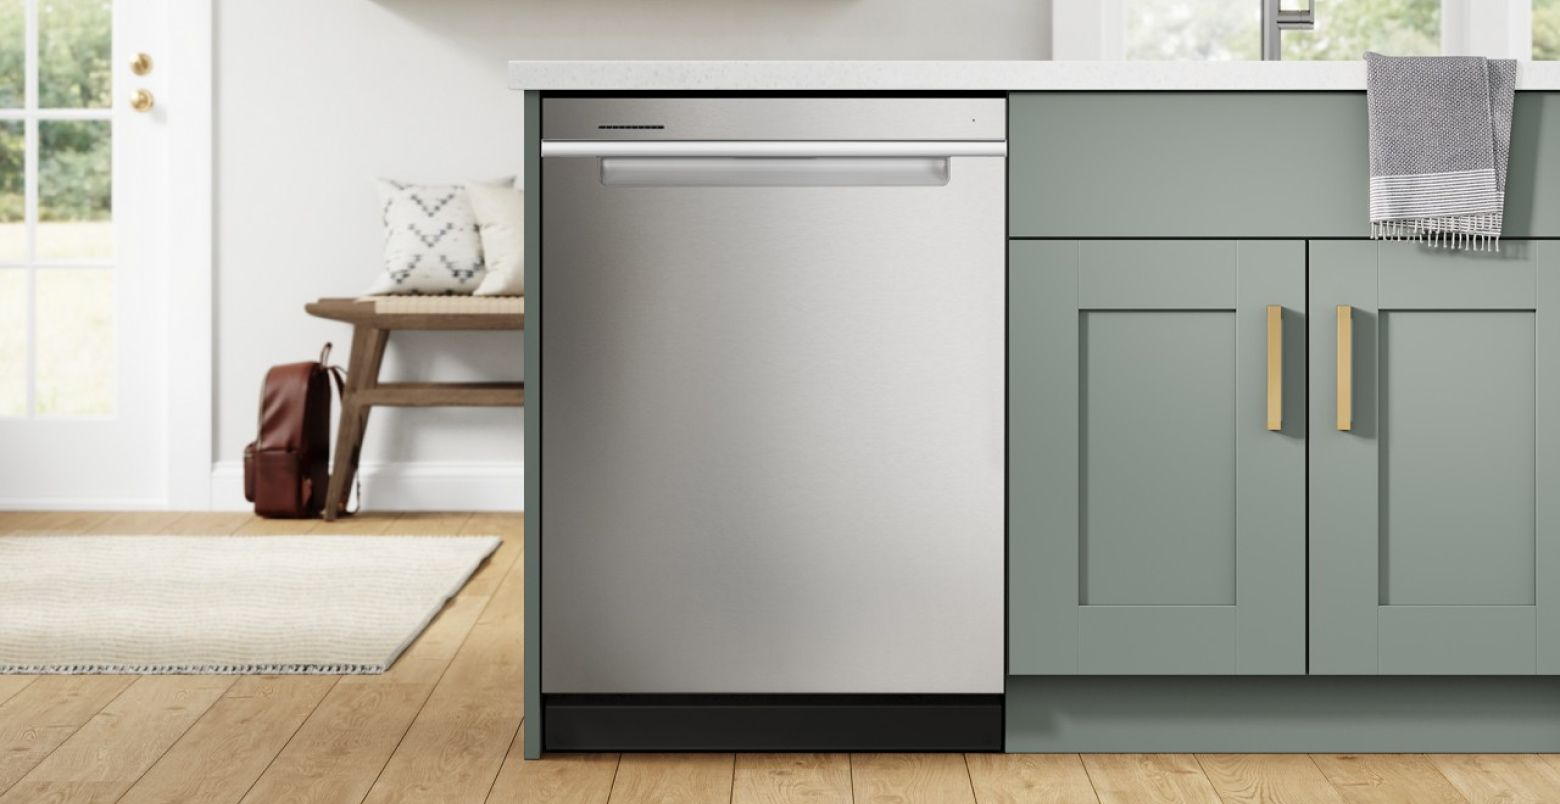 Click to explore dishwashers by finish